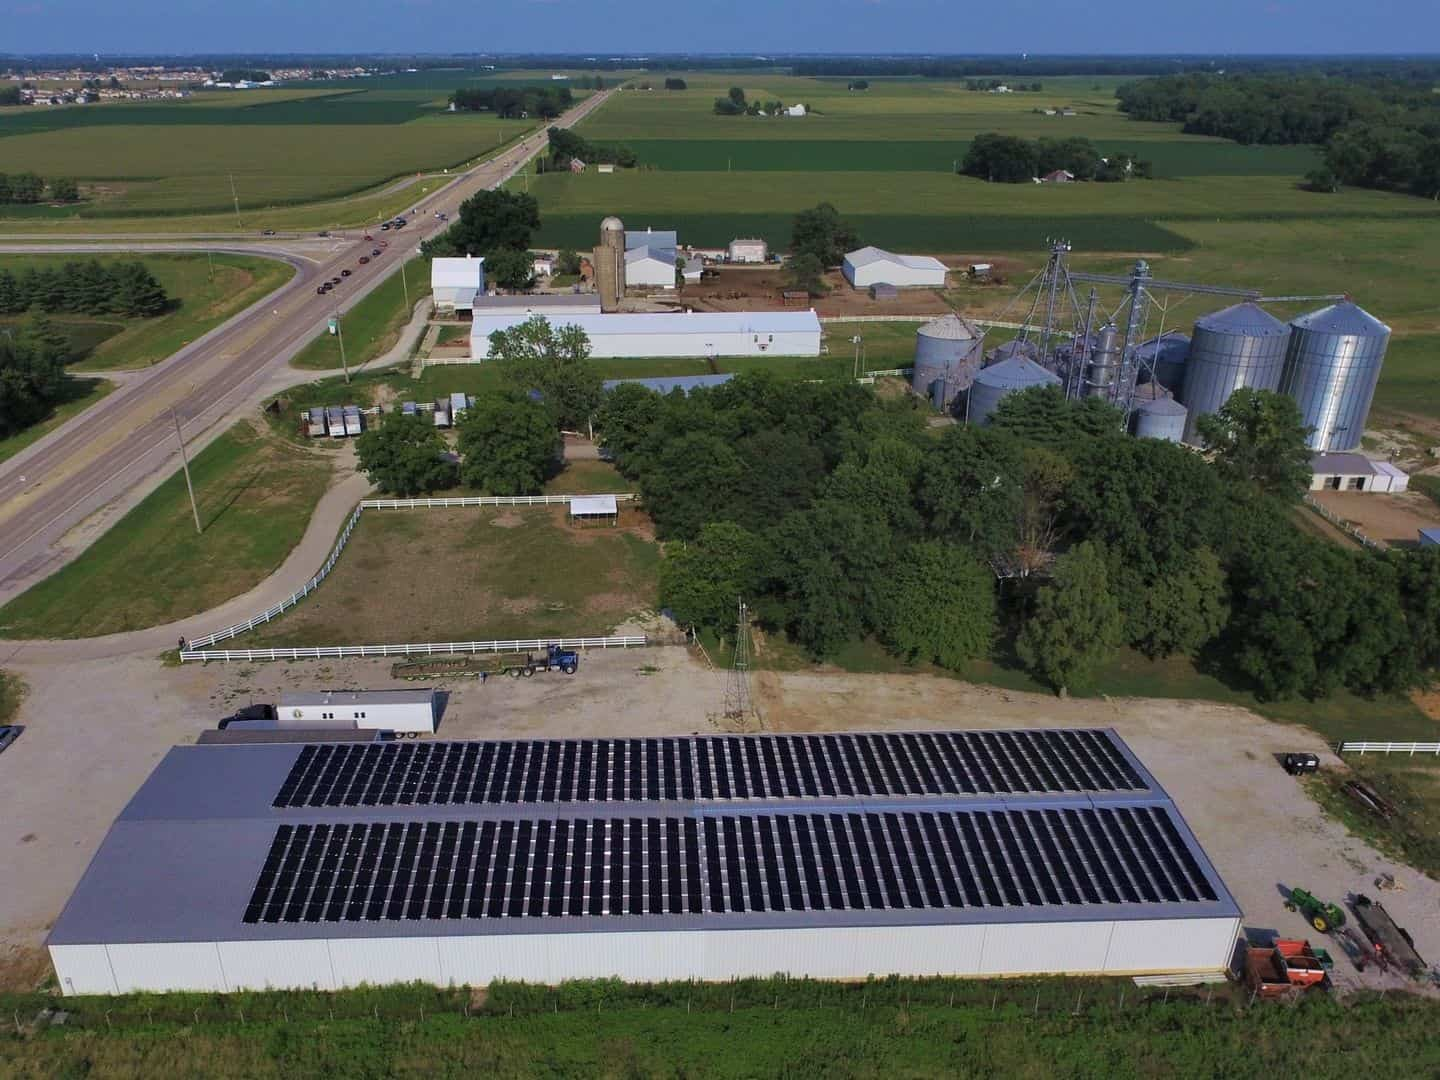 Renner Stock Farms, Belleville IL, 166kW